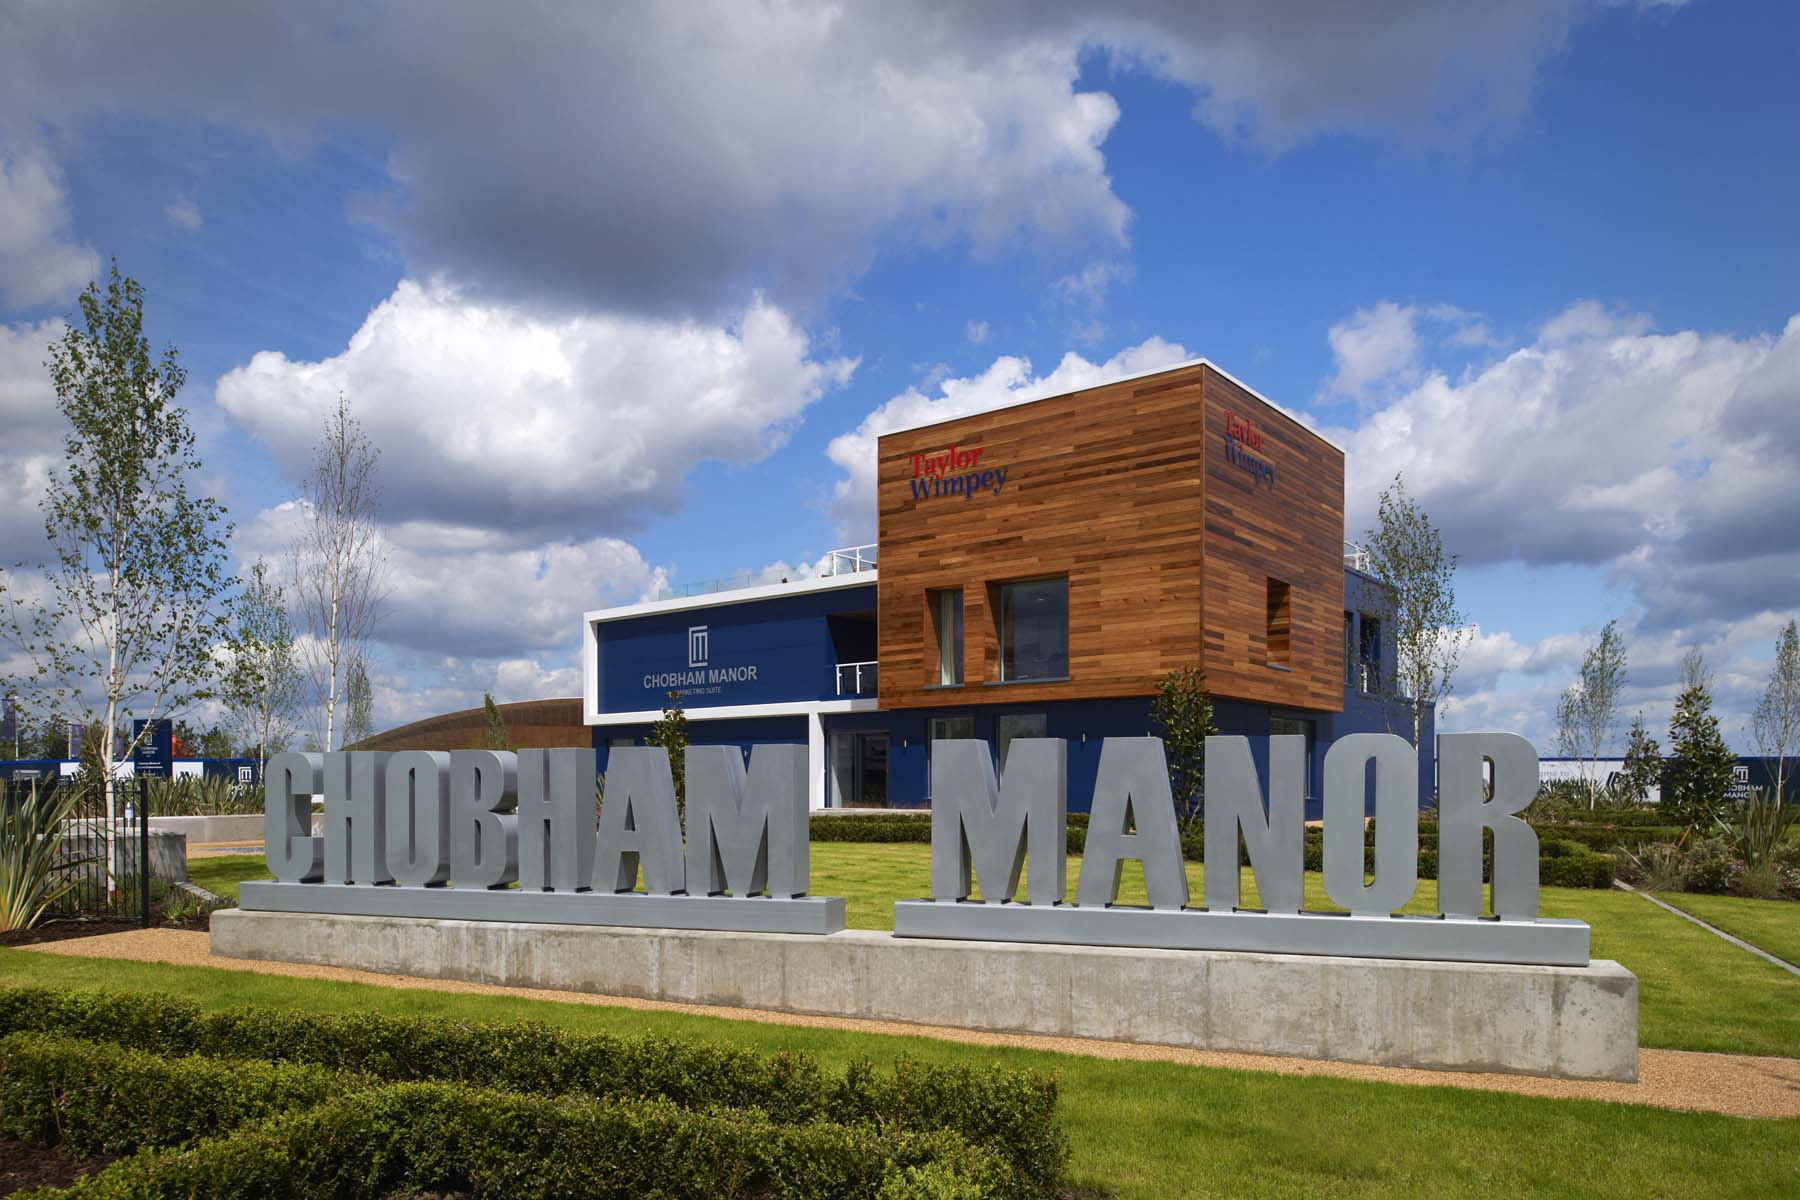 Chobham Manor Sales Office